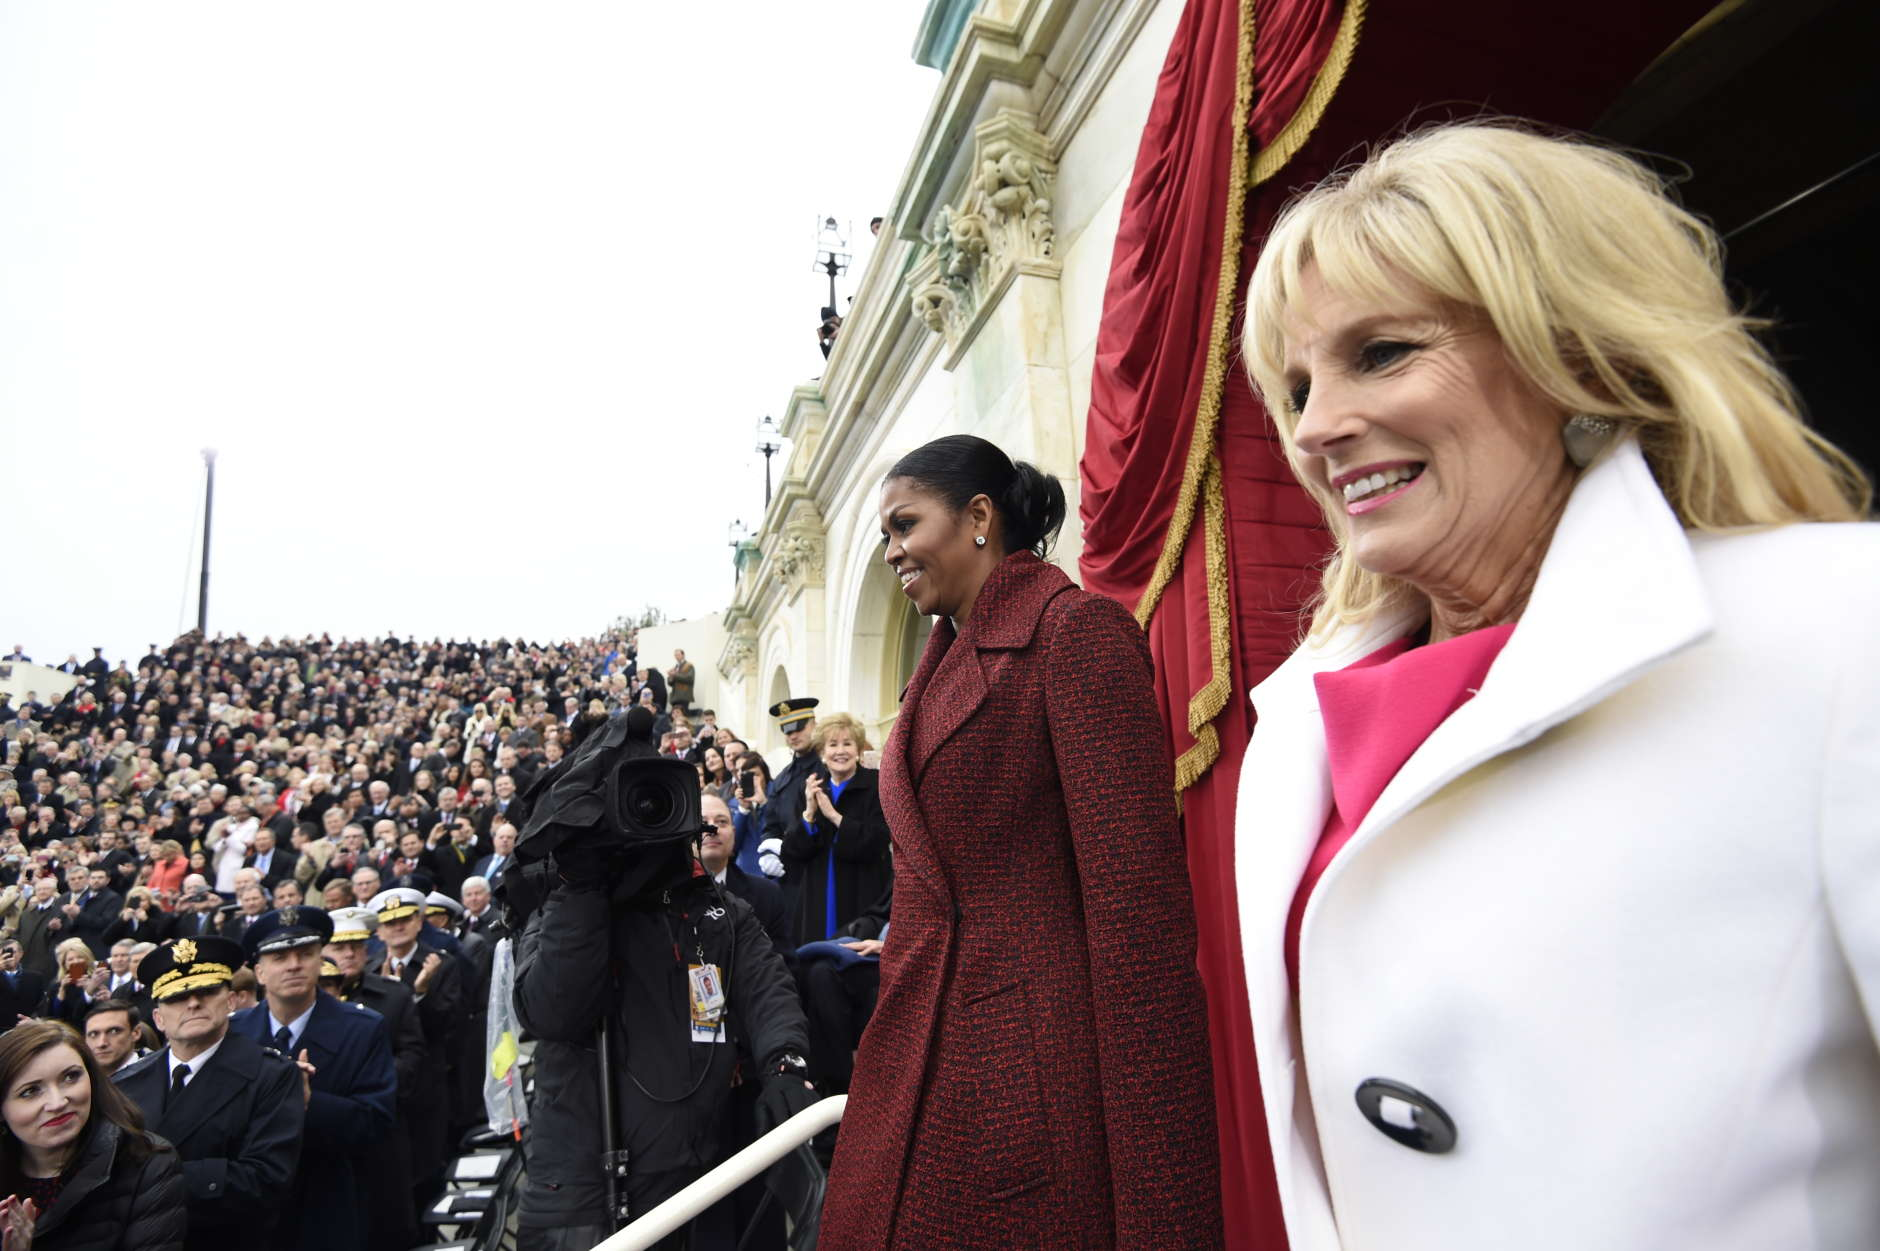 WASHINGTON, DC - JANUARY 20: US First Lady Michelle Obama (L) and Dr. Jill Biden arrive for the Presidential Inauguration of Donald Trump at the US Capitol on January 20, 2017 in Washington, DC. Donald J. Trump will become the 45th president of the United States today.  (Photo by Saul Loeb - Pool/Getty Images)